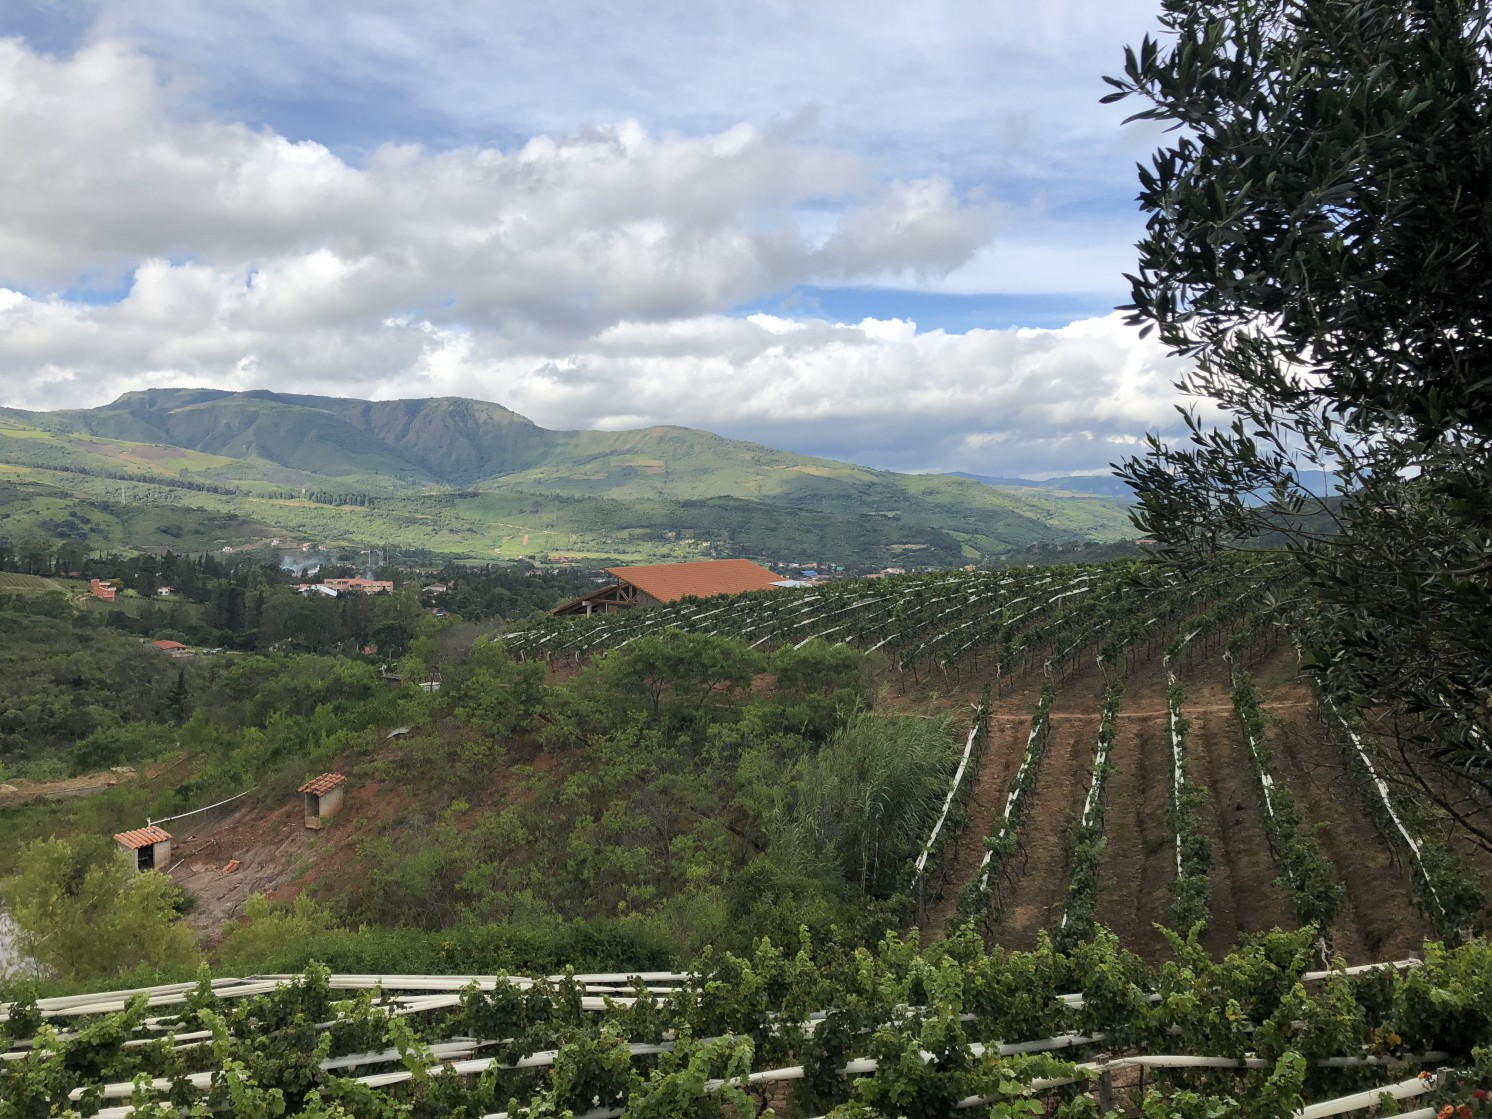 The vineyards at Bodega Uvairenda in Samaipata, Bolivia represent the elegance of high altitude wines. Cooler weather and longer hangtimes make for complex and rich wines.